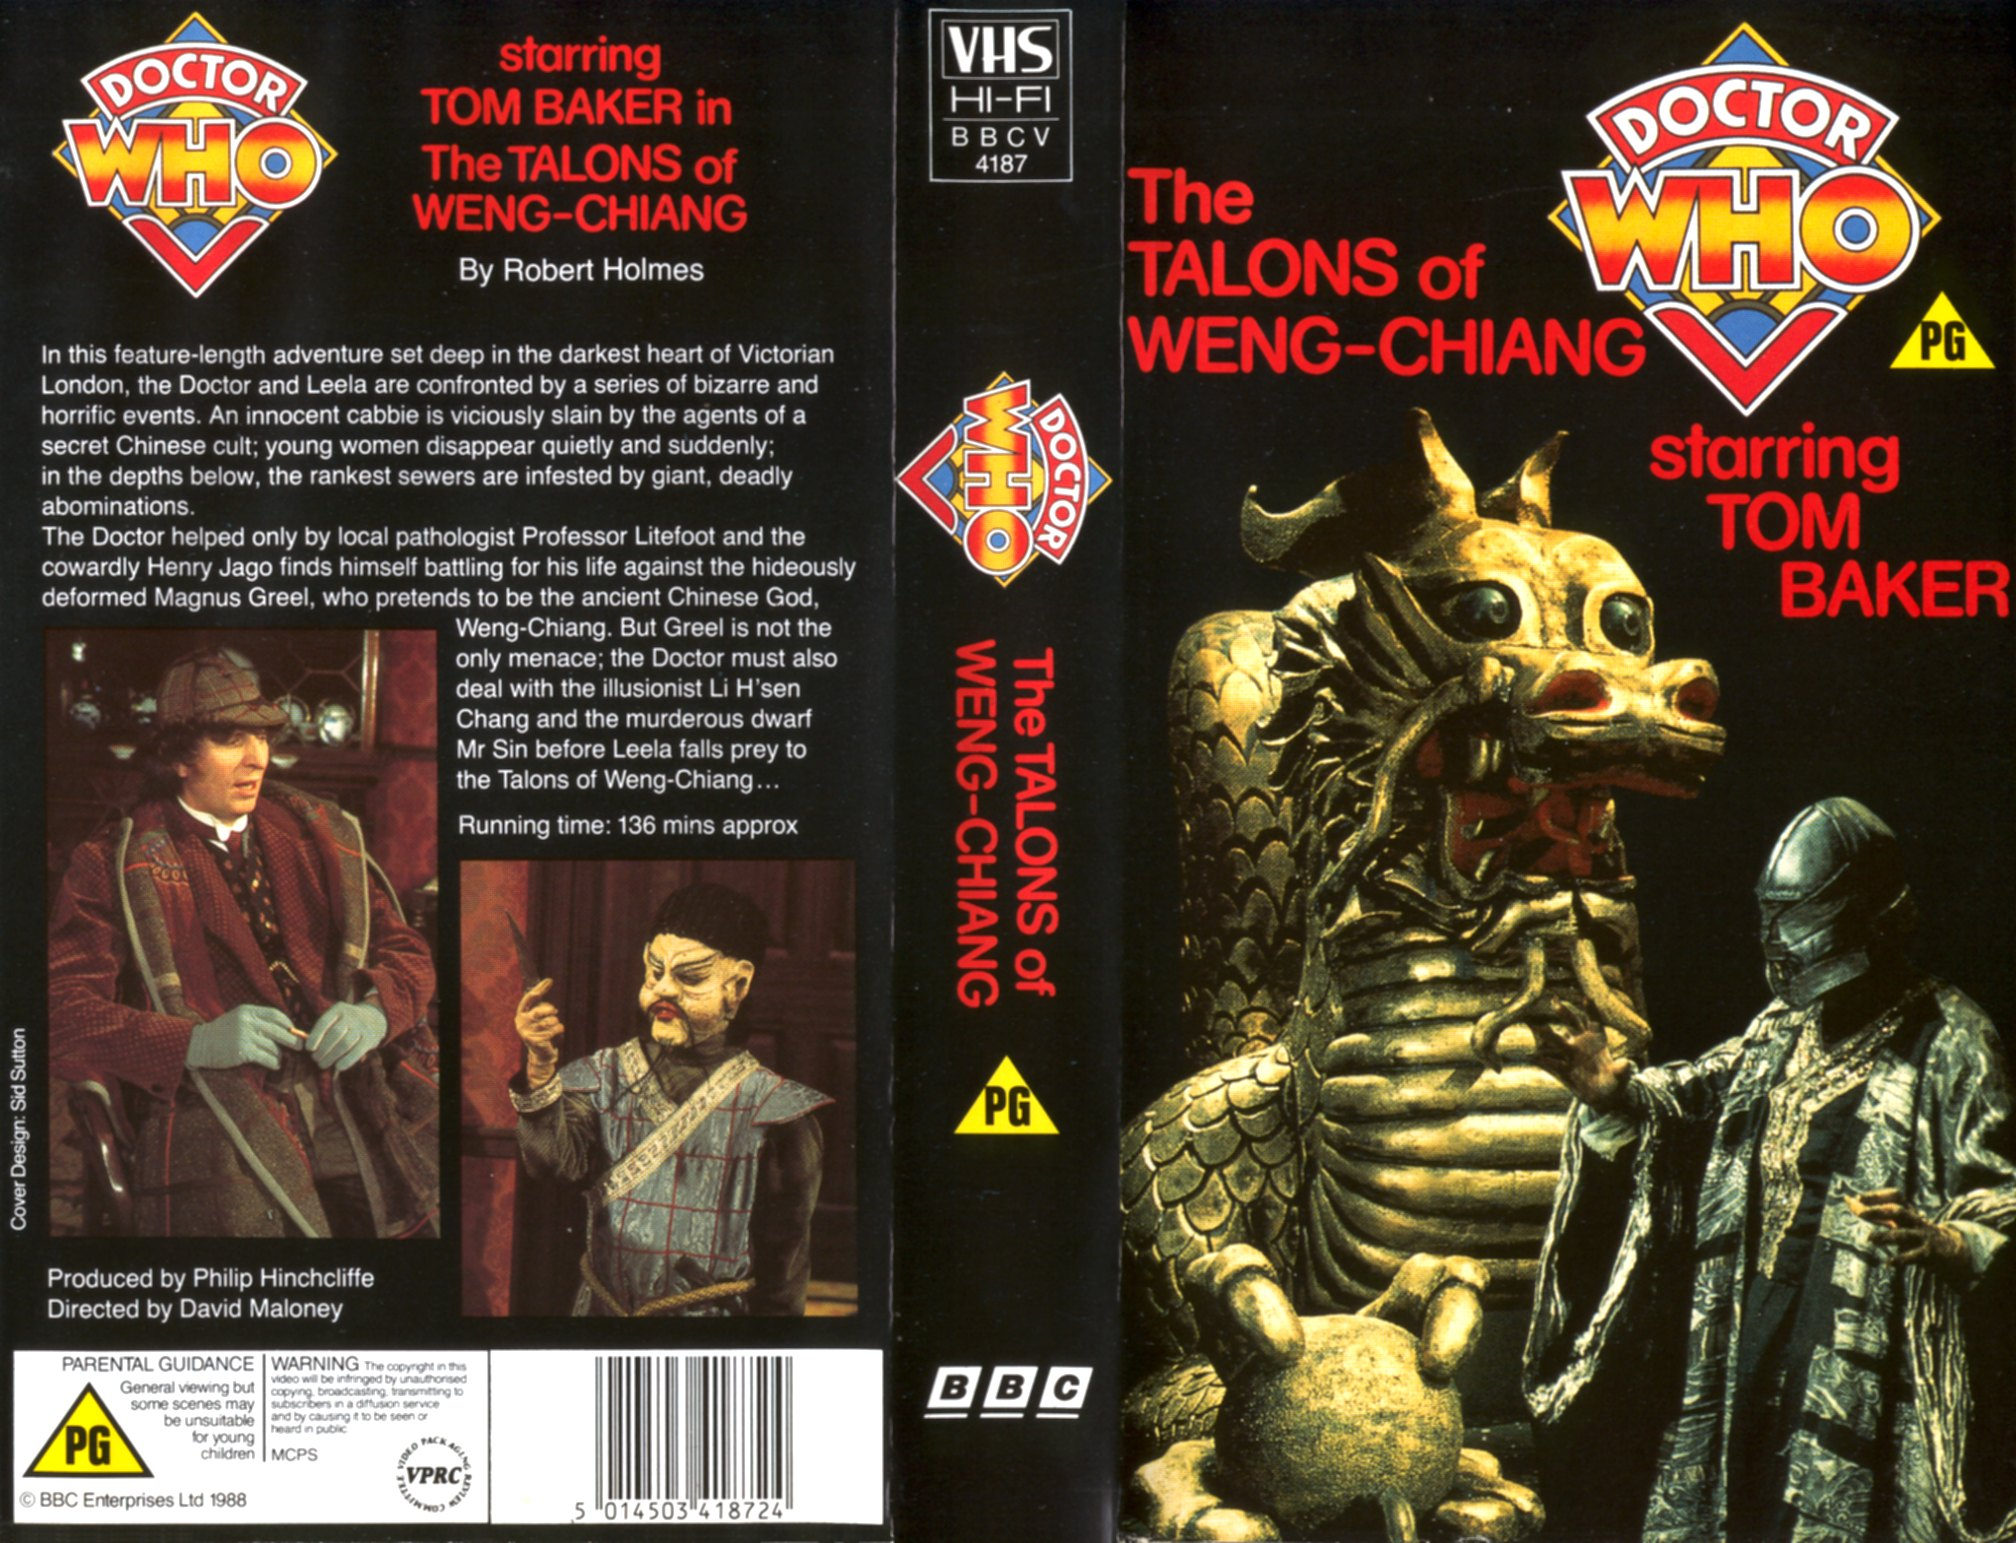 The Talons of Weng-Chiang VHS